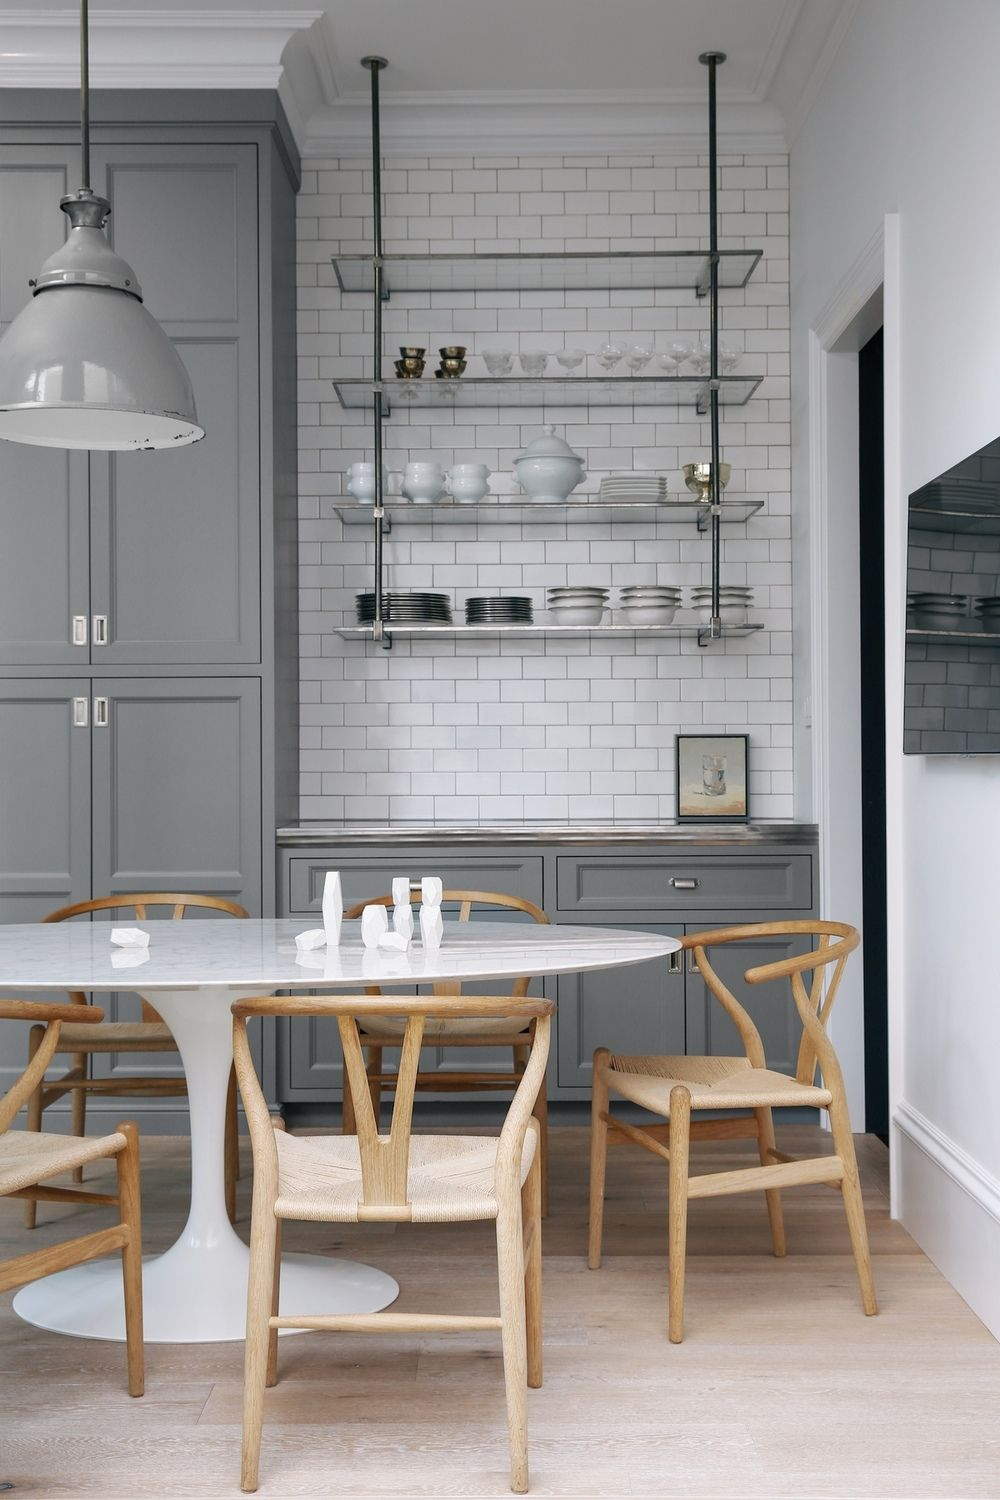 Bess Friday Photography Kitchen inspirations, Kitchen